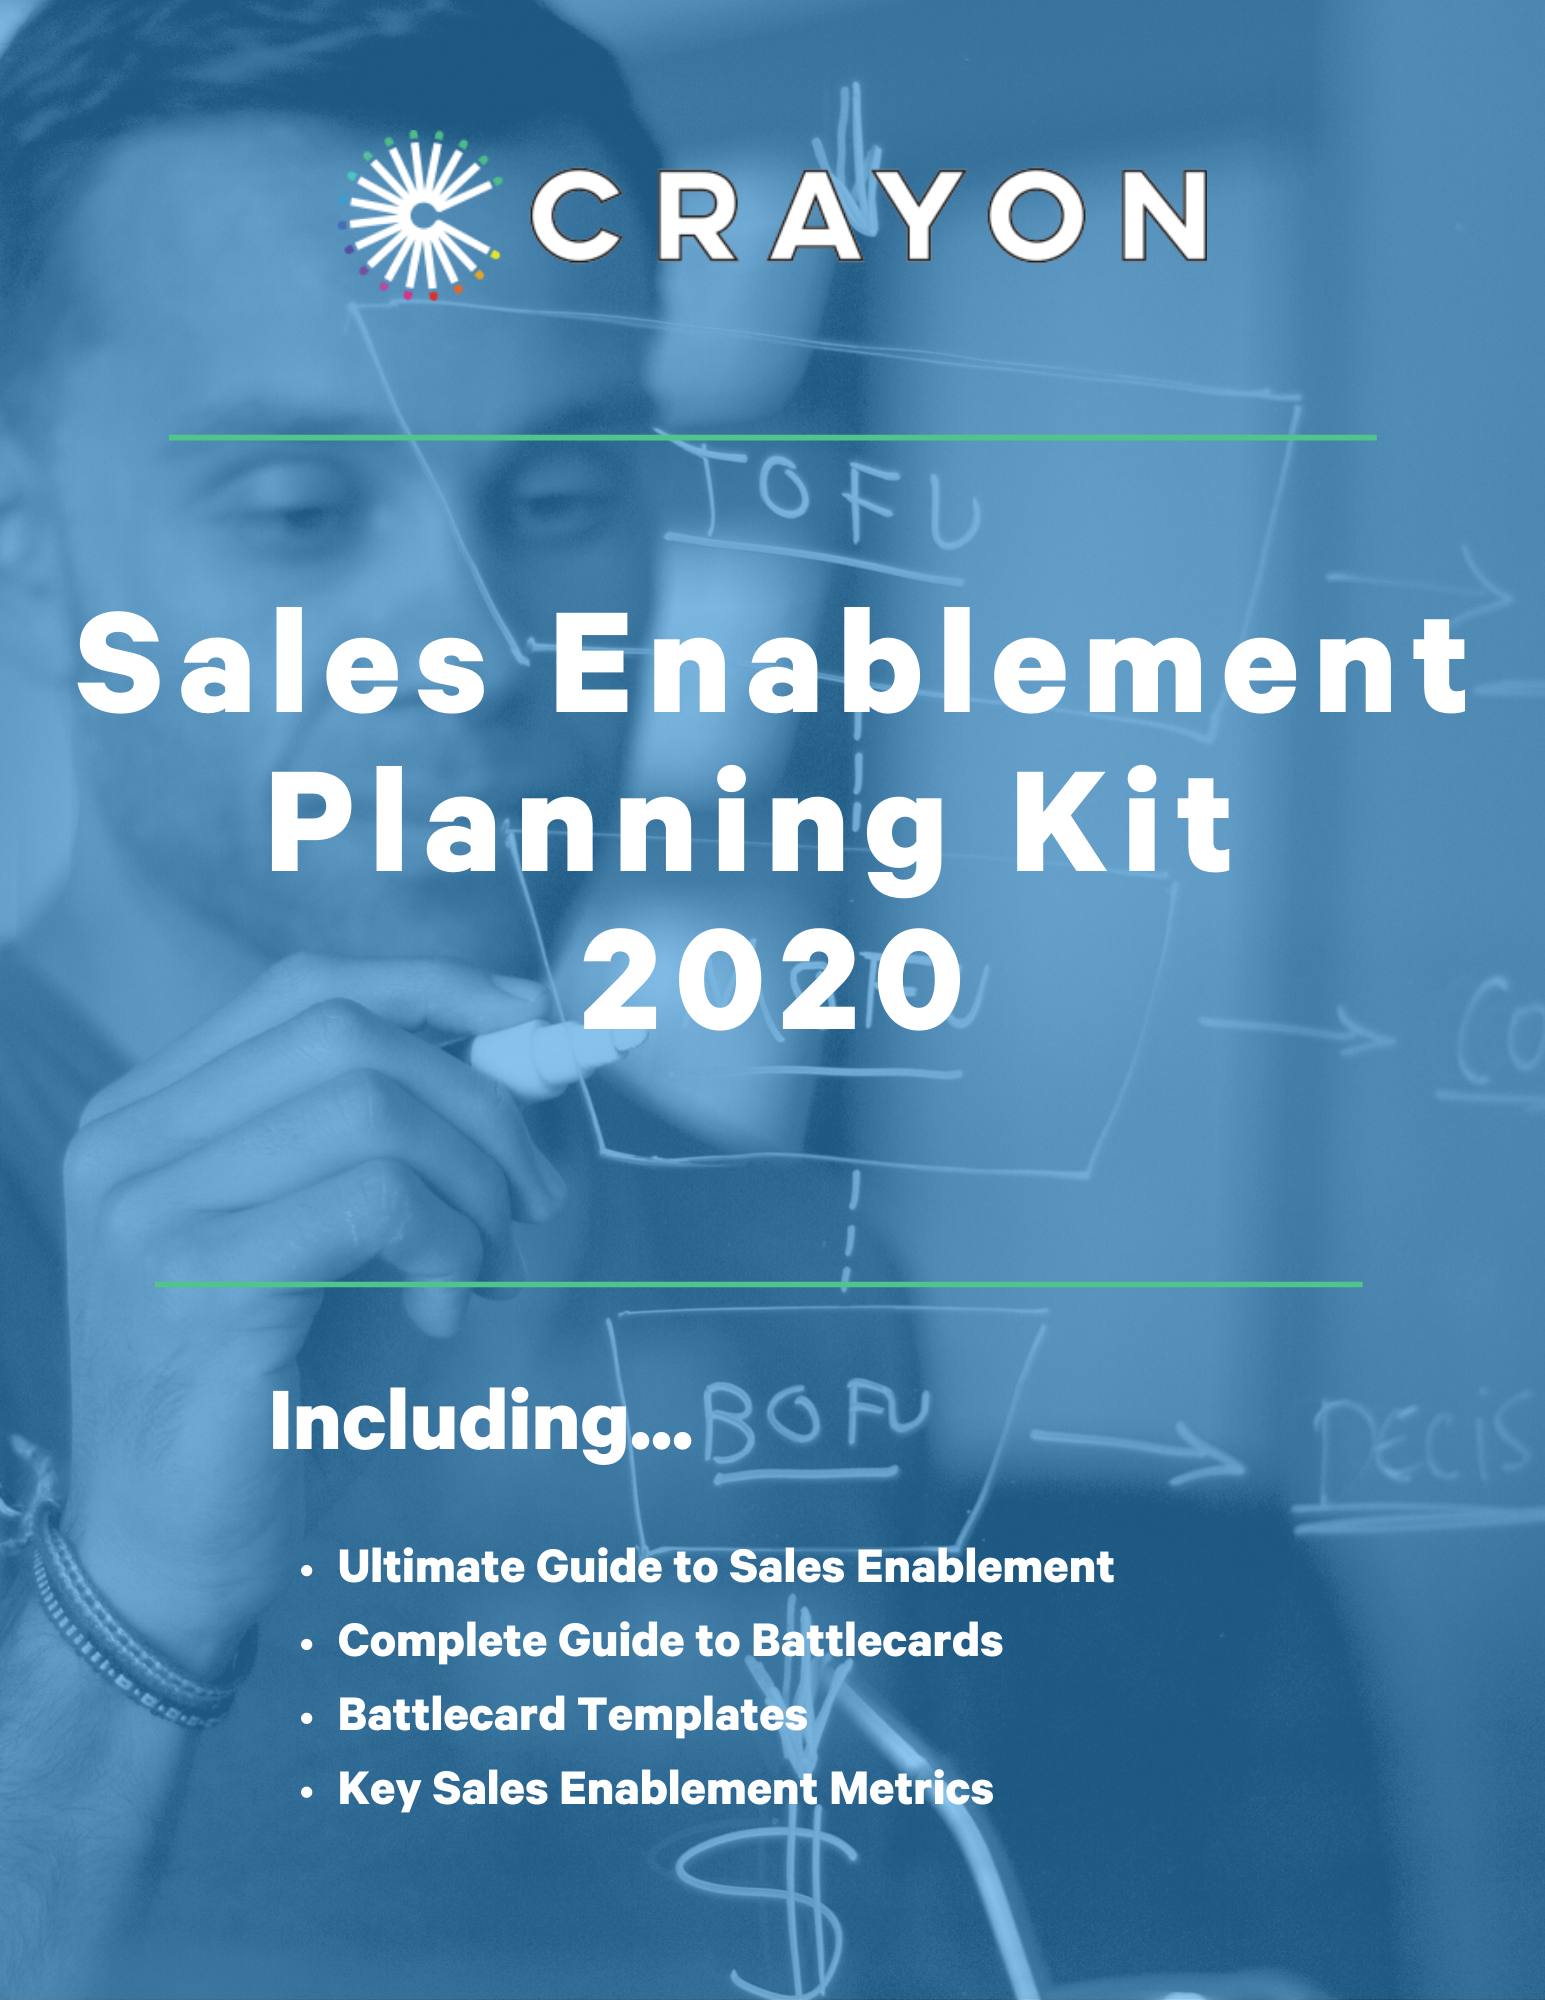 Sales Enablement Planning Kit 2020